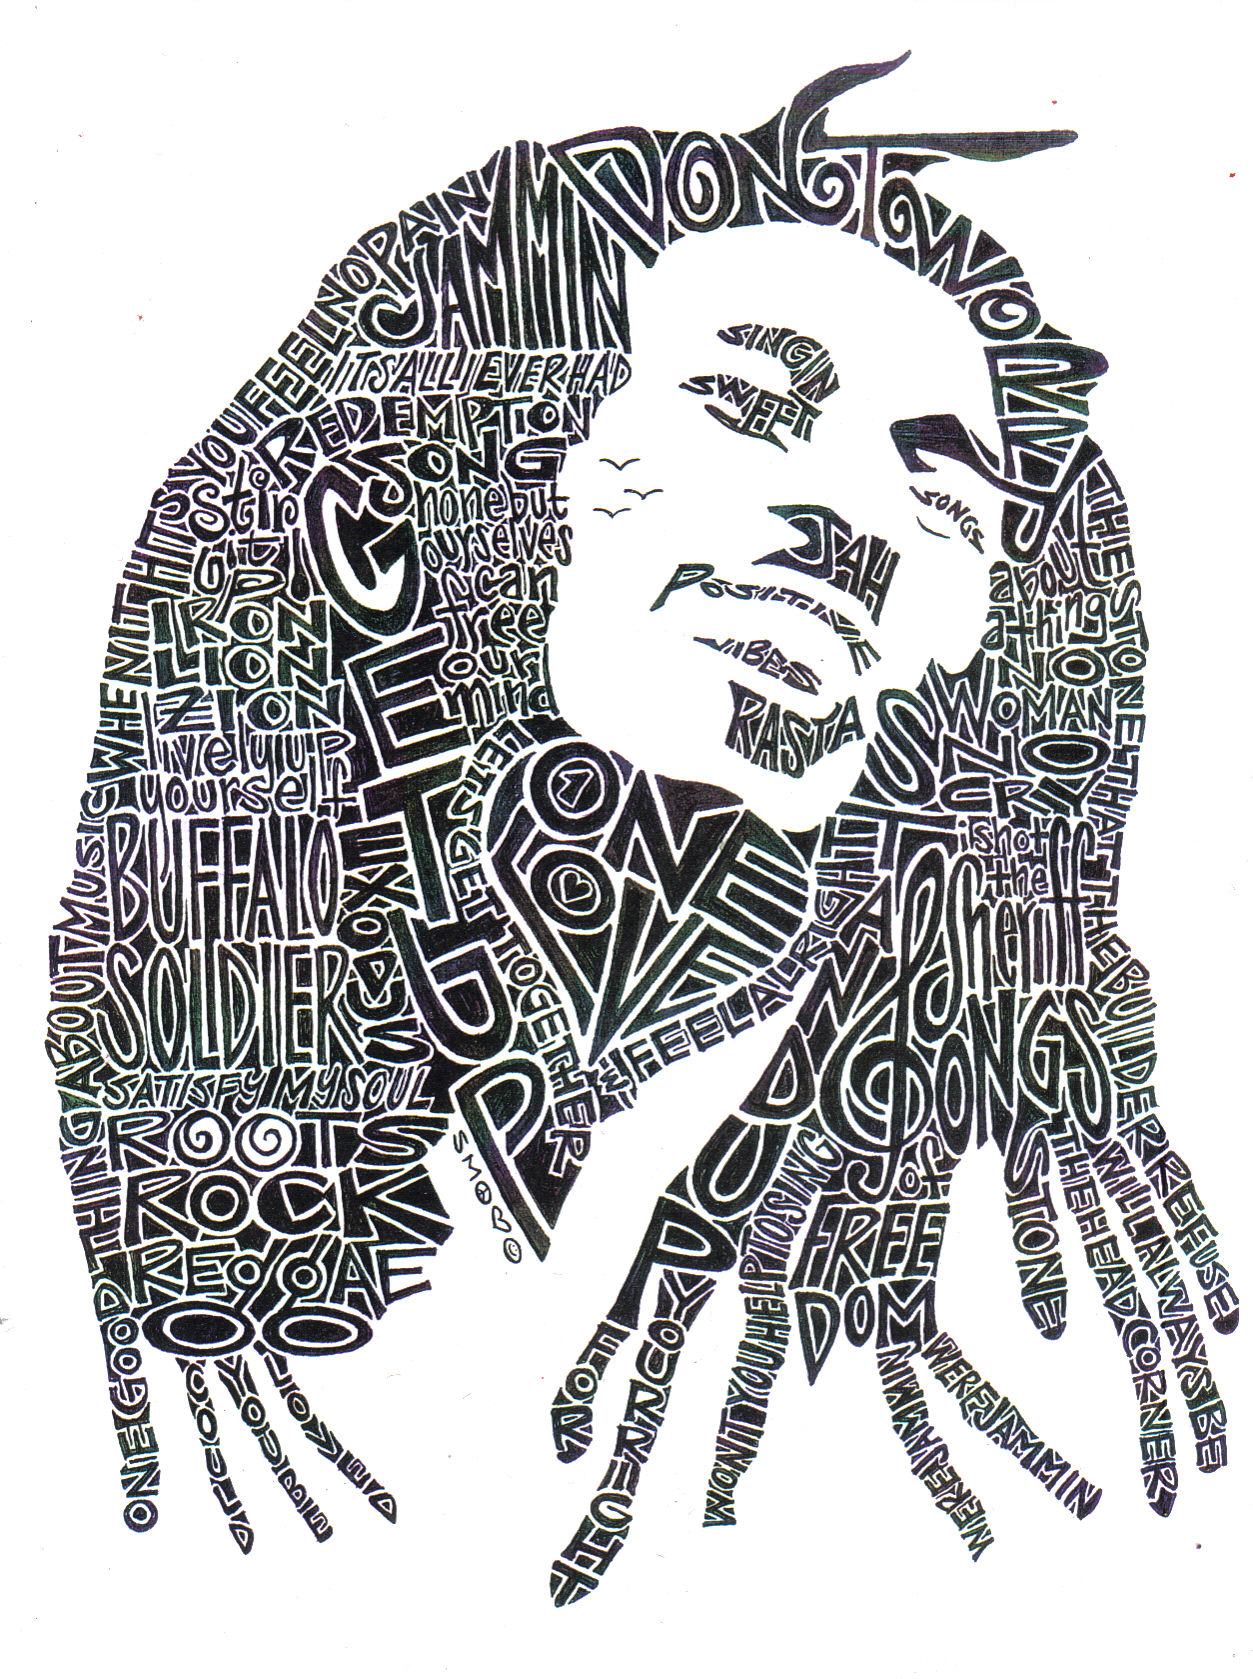 Line Art Word : Bob marley black and white word portrait smock foundmyself